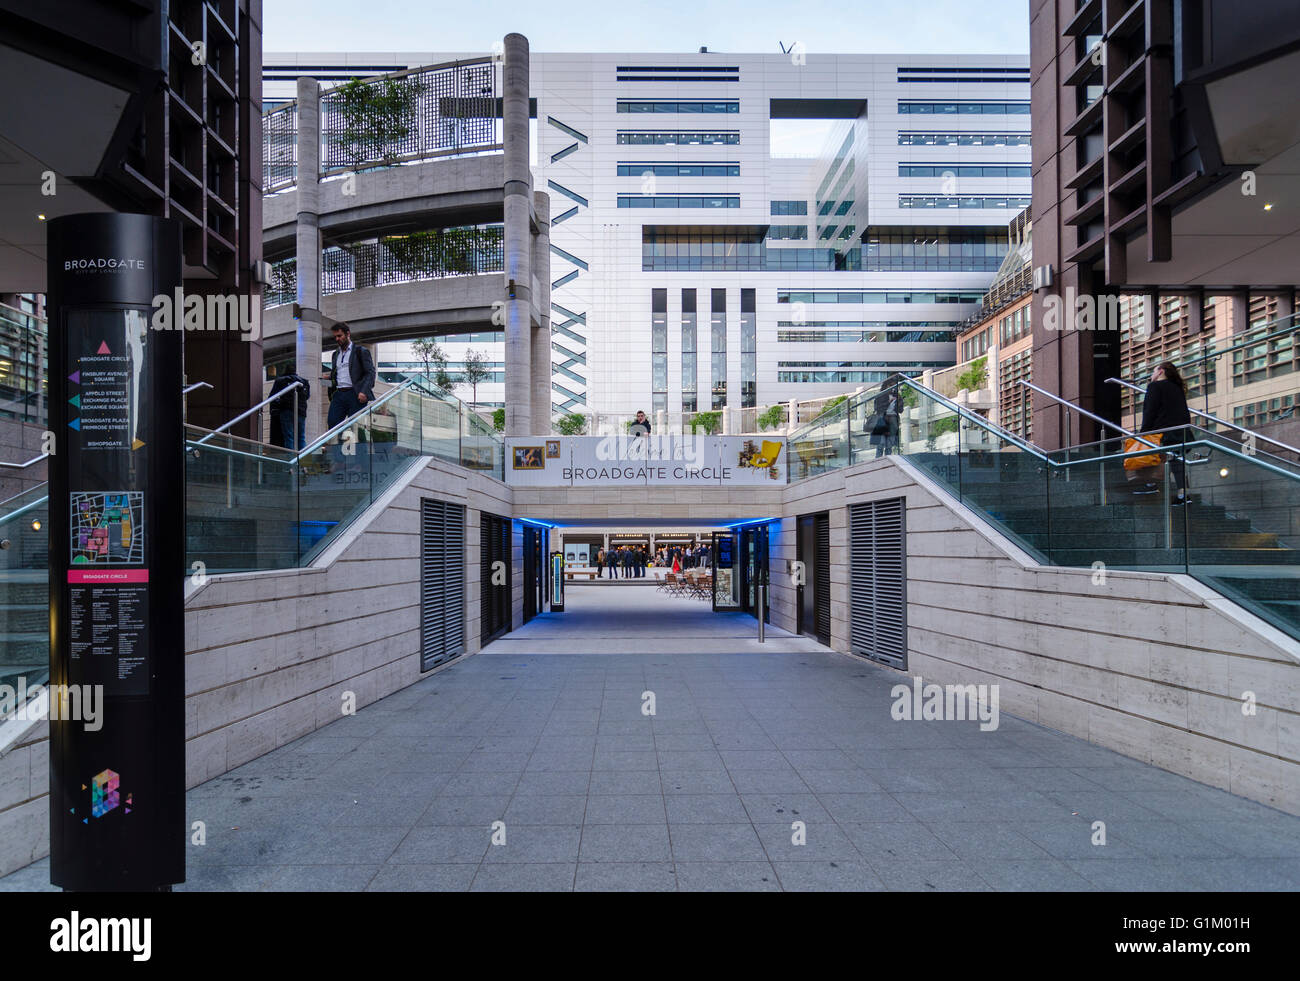 Broadgate Circle, London - Stock Image